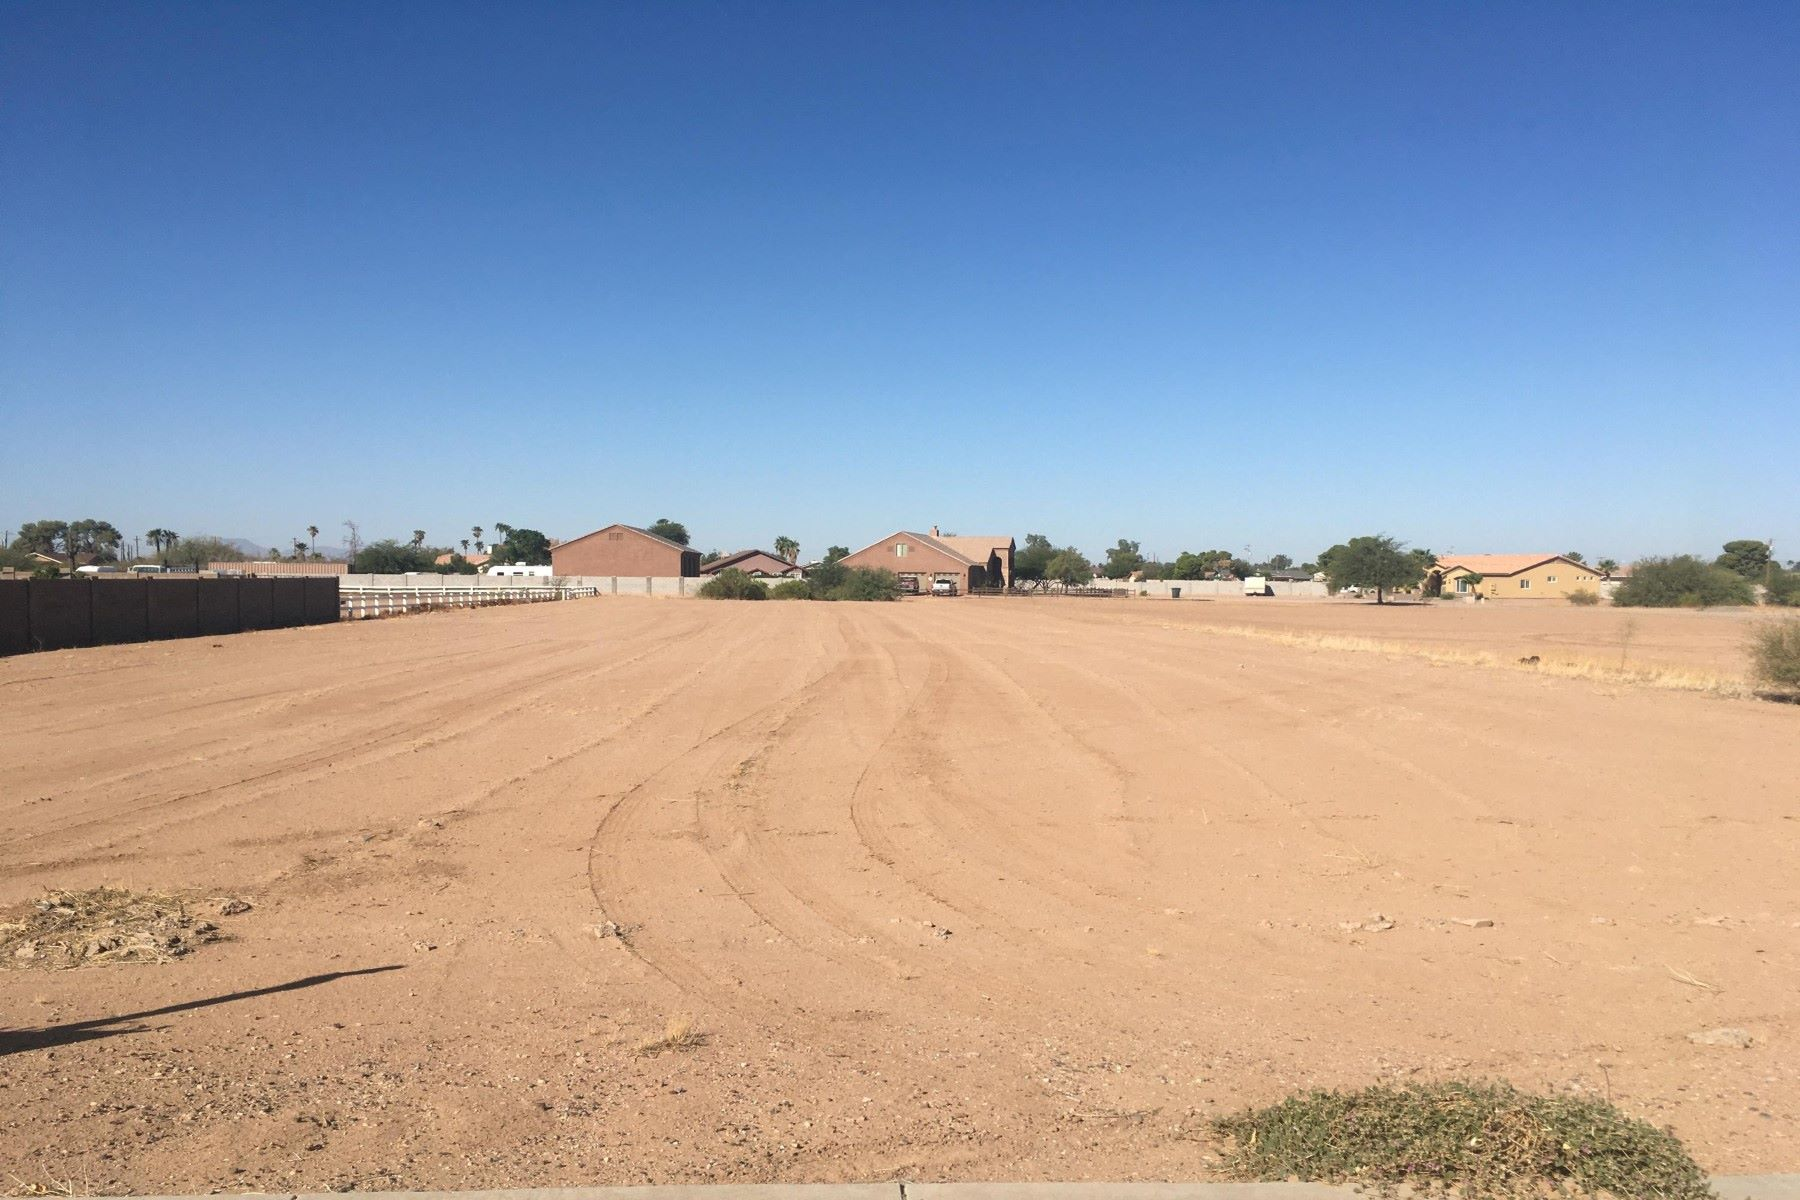 Land for Sale at 149 N POTTEBAUM RD Casa Grande, Arizona 85122 United States